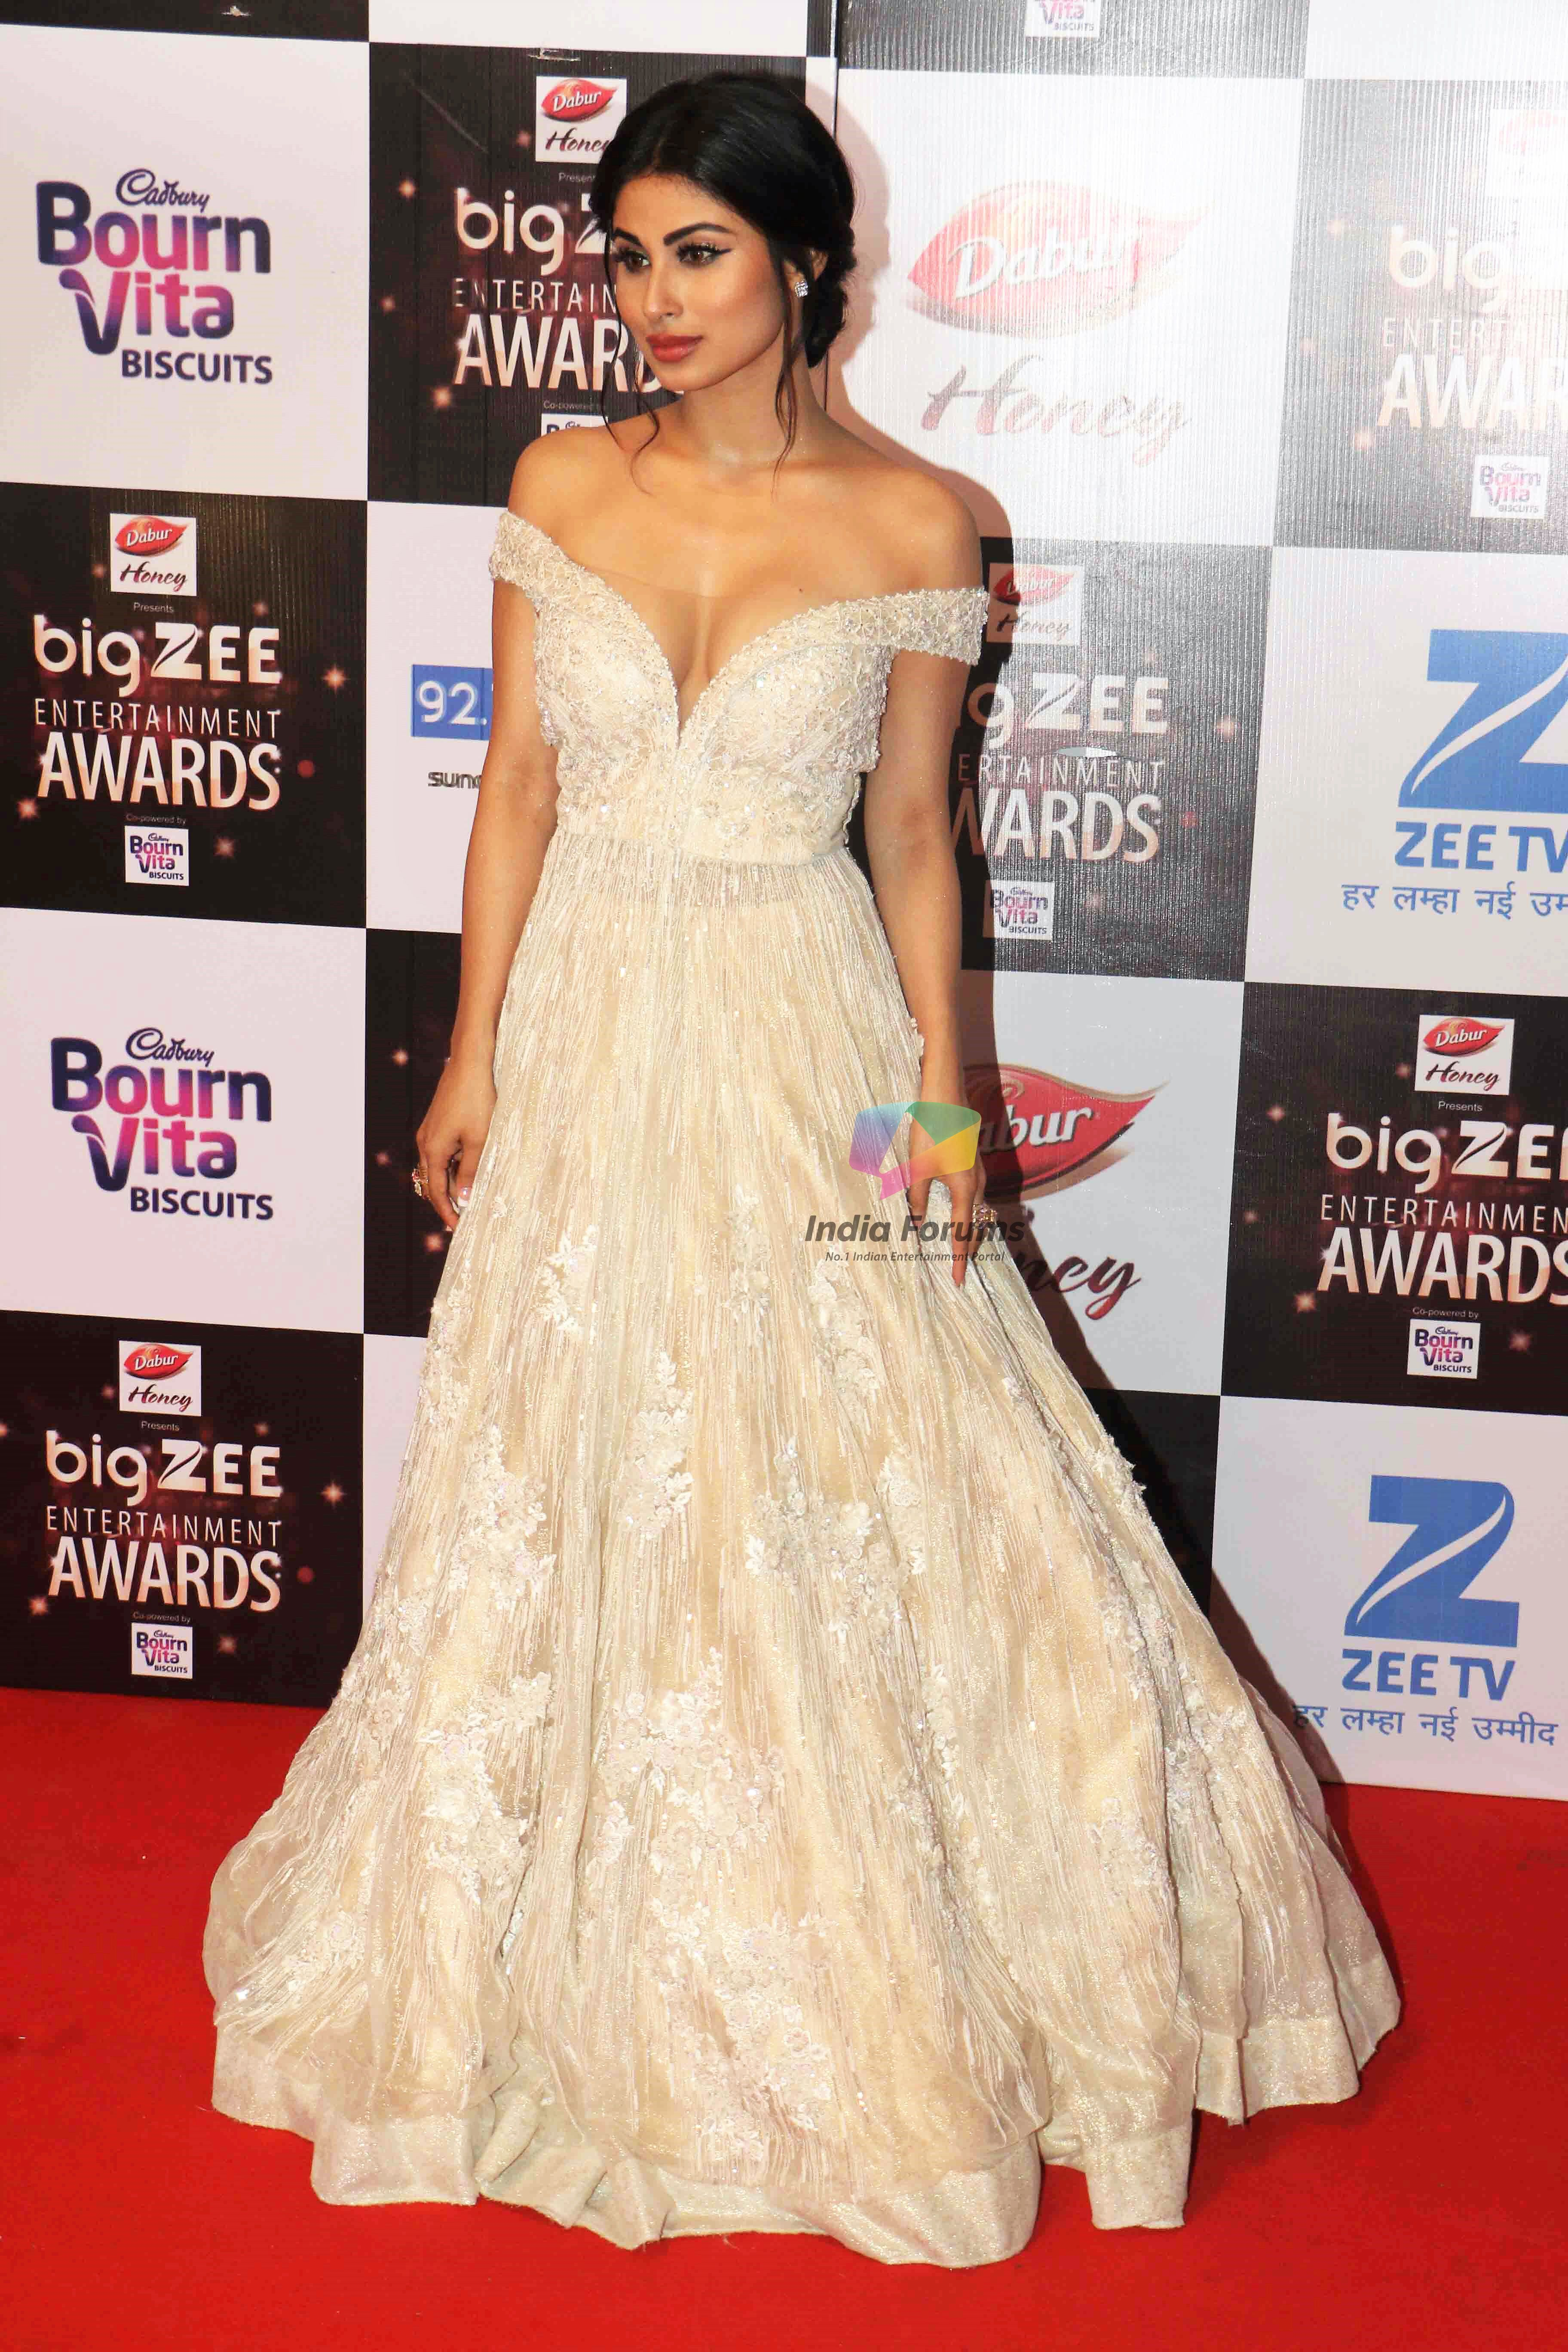 Mouni Roy In A Beige Ballroom Gown At Big Zee Awards 2017